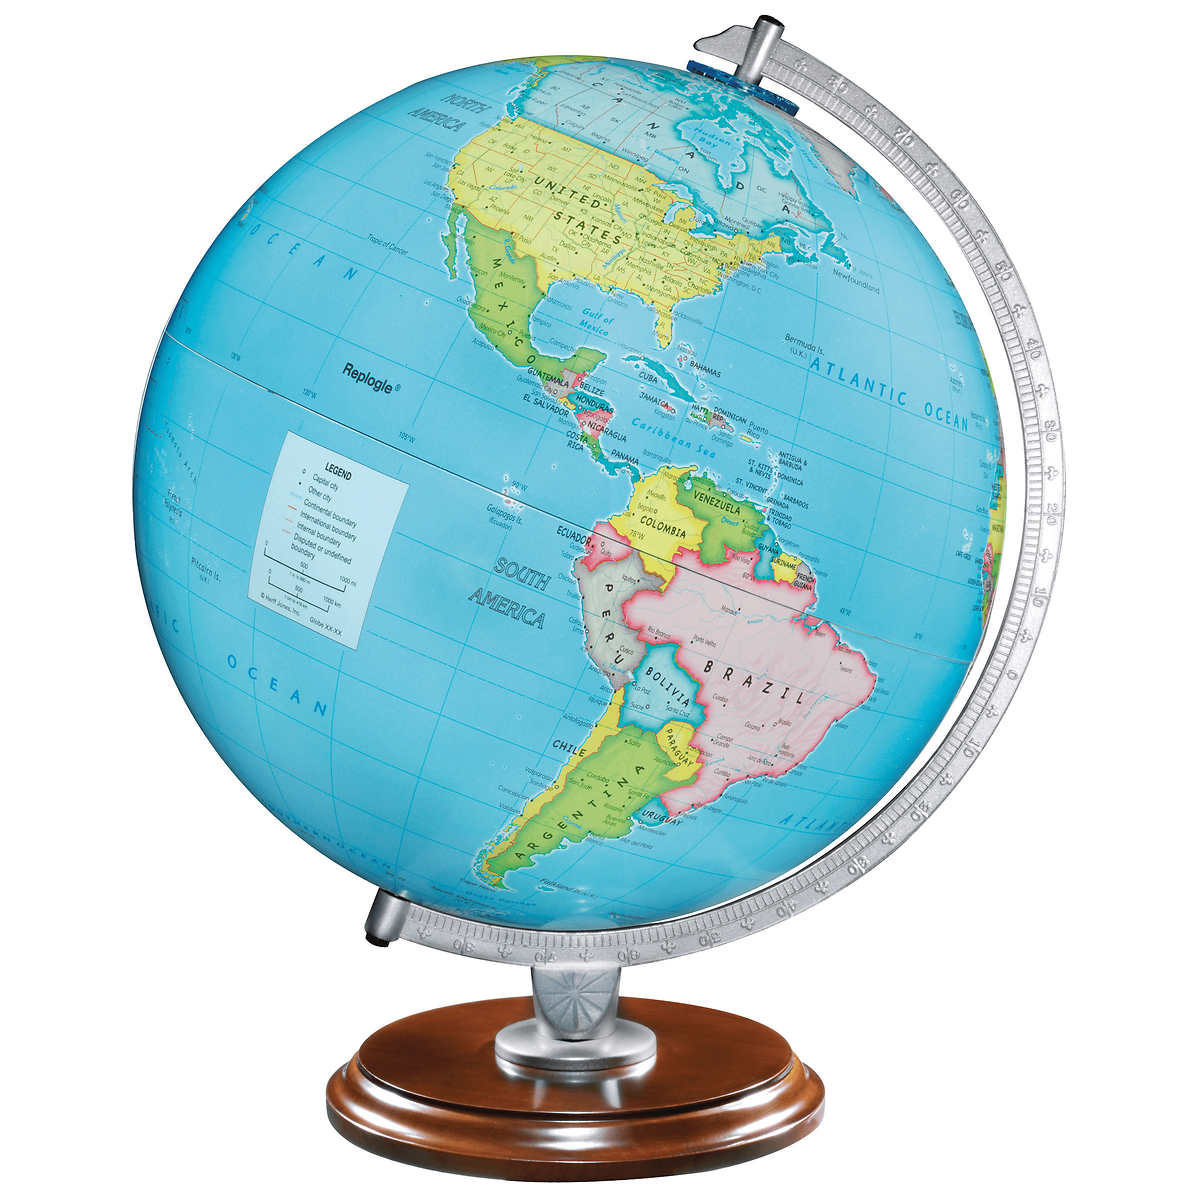 Replogle Day & Night 12 on glacial map of the world, titled map of the world, pdf map of the world, rotatable map of the world, bright map of the world, interactive map of the world, searchable map of the world, google map of the world, tectonic map of the world, zoom map of the world,